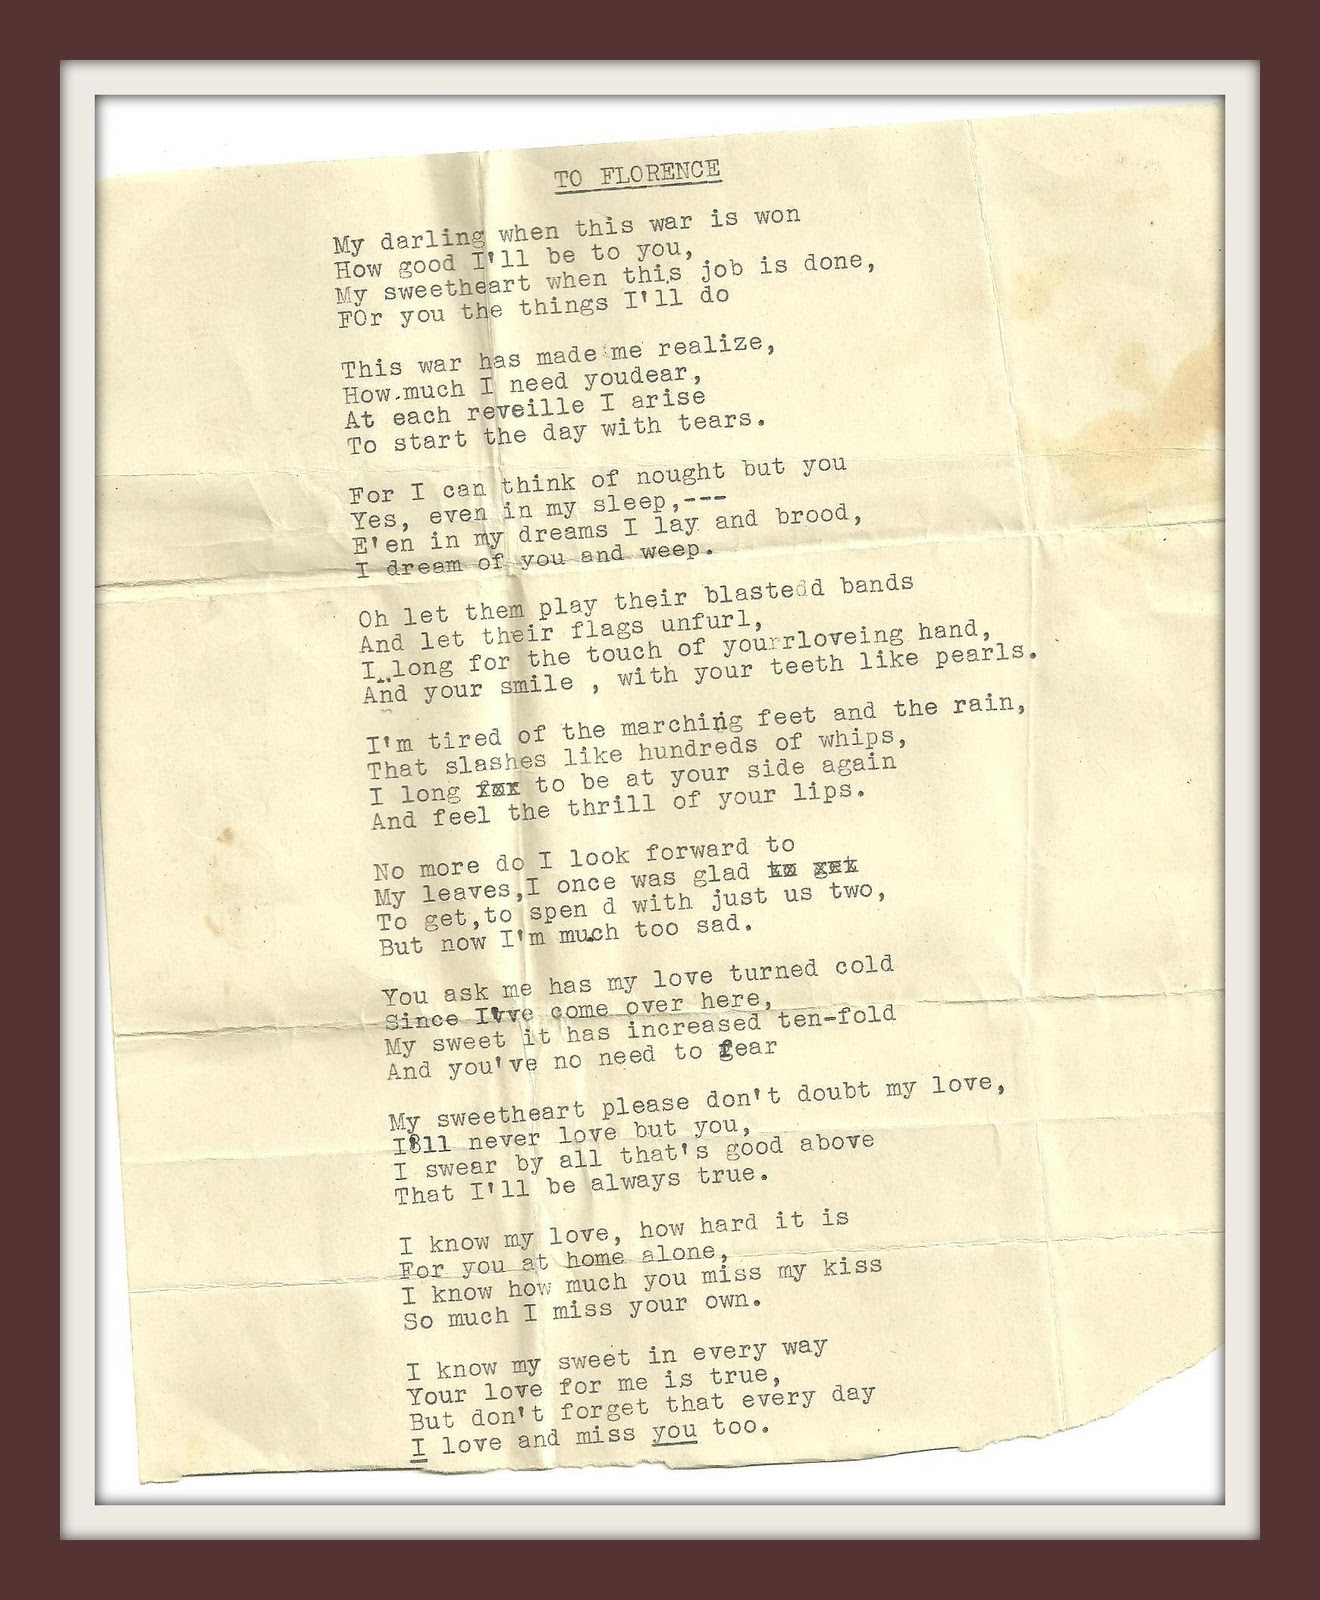 Felicianation Ink: More Poetry From WWII - A soldier's letters to ...